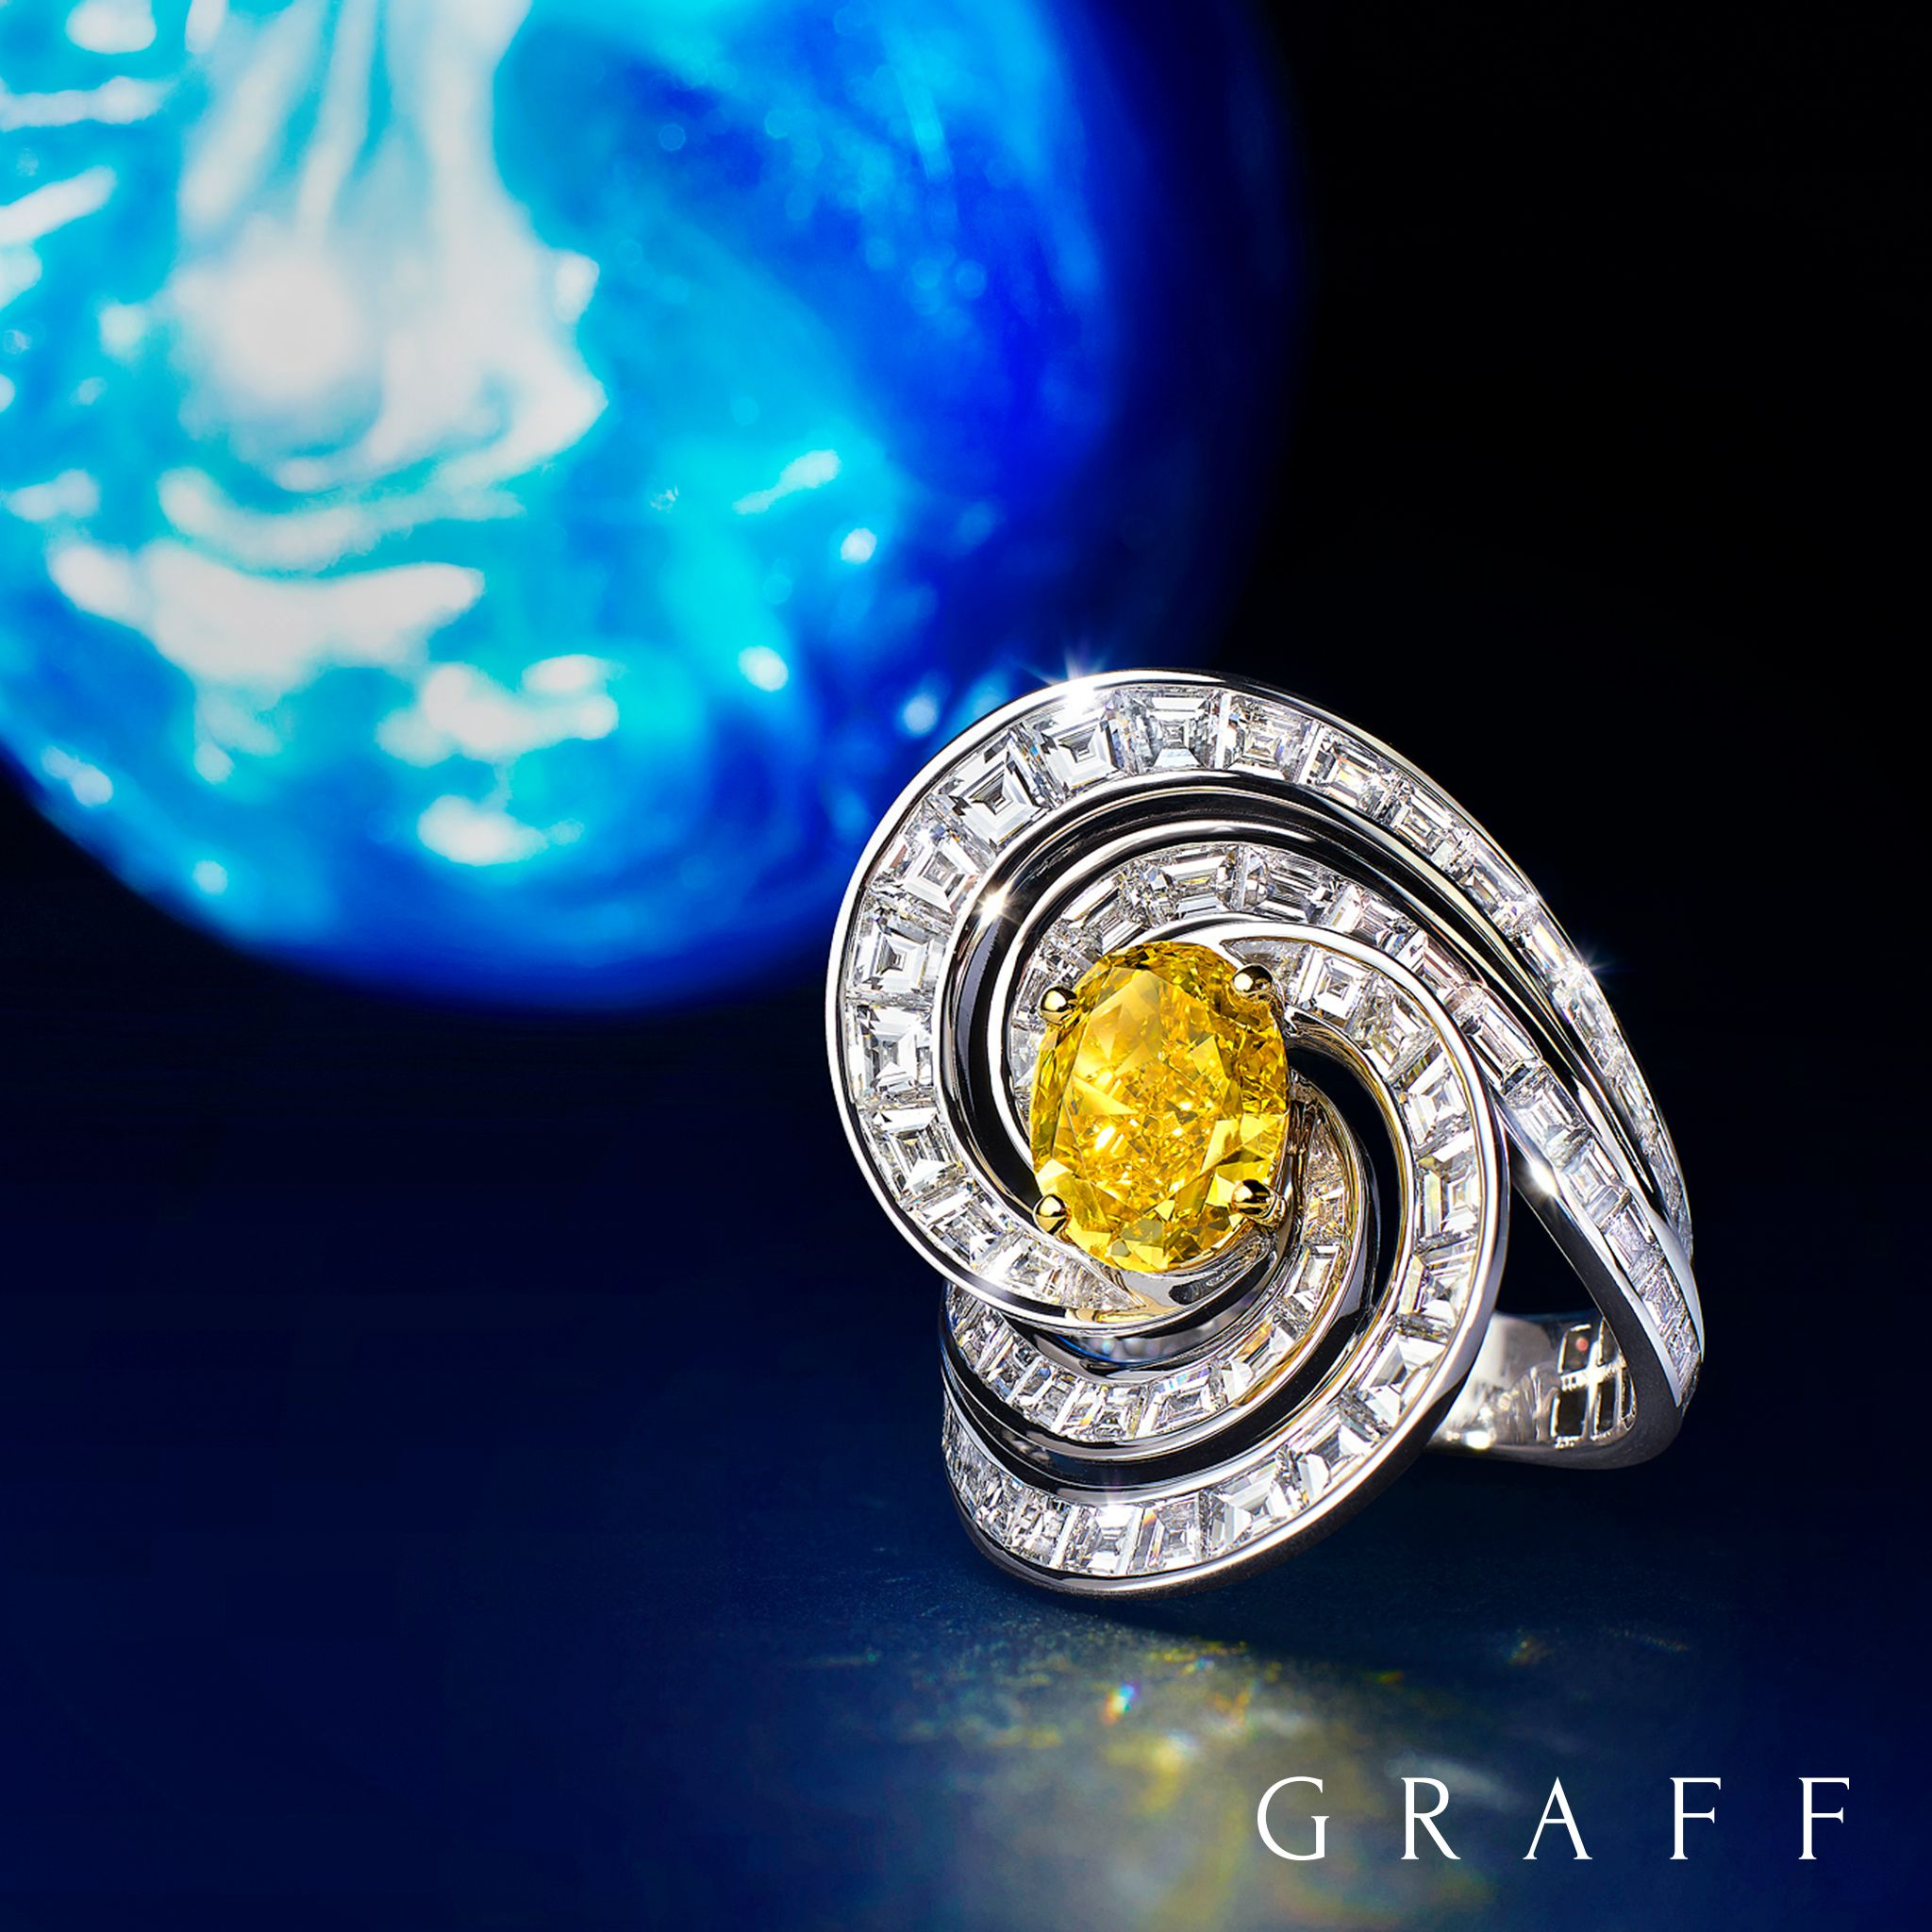 high and cushion white a scintillation diamond halo graff heart featuring ring jewellery collections cut of fancy yellow with vivid top ct